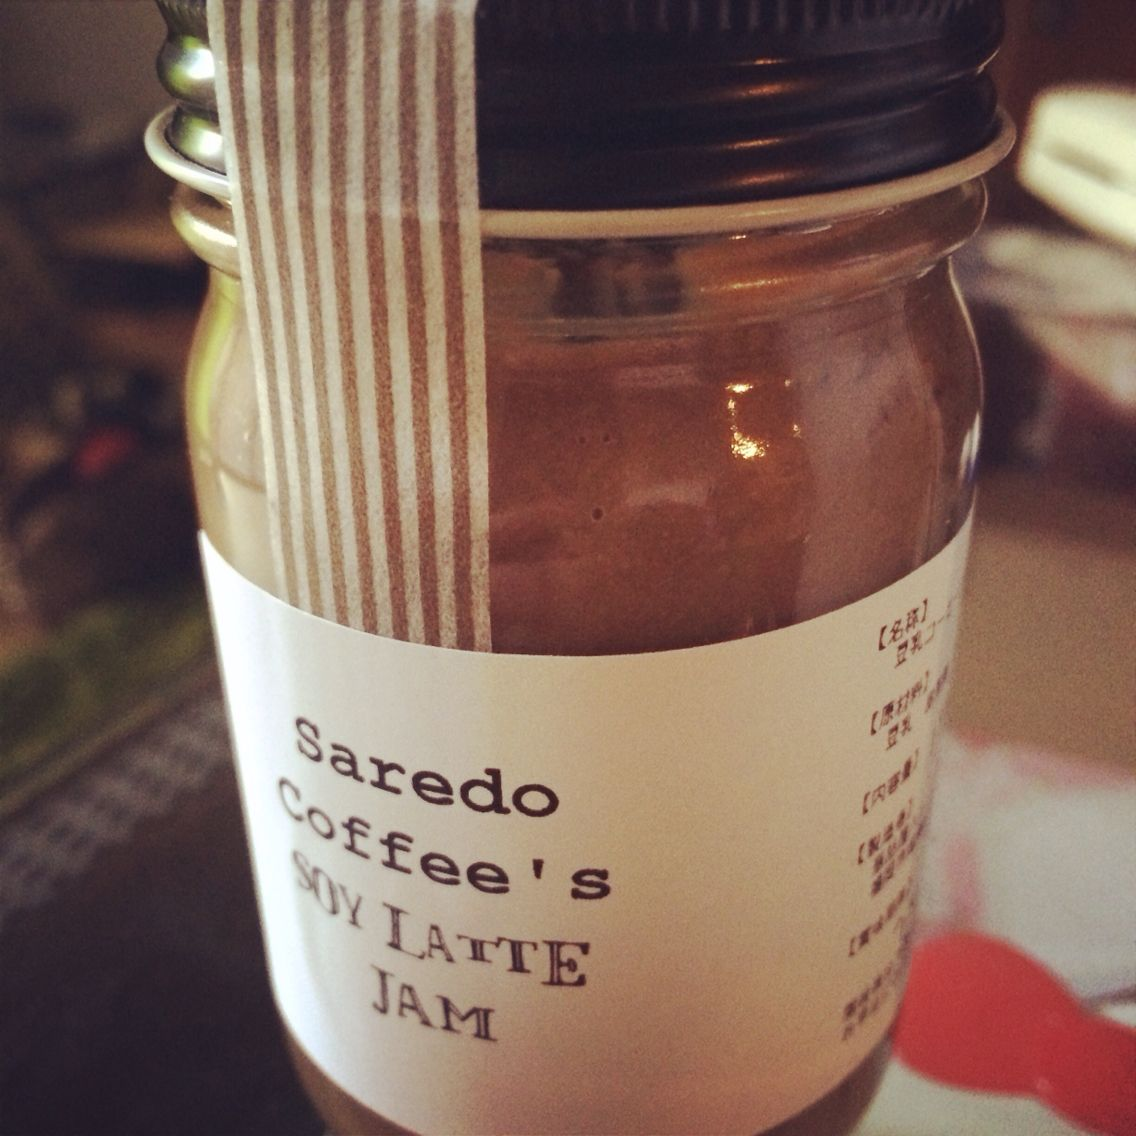 Soy latte coffee Jam @saredocoffee